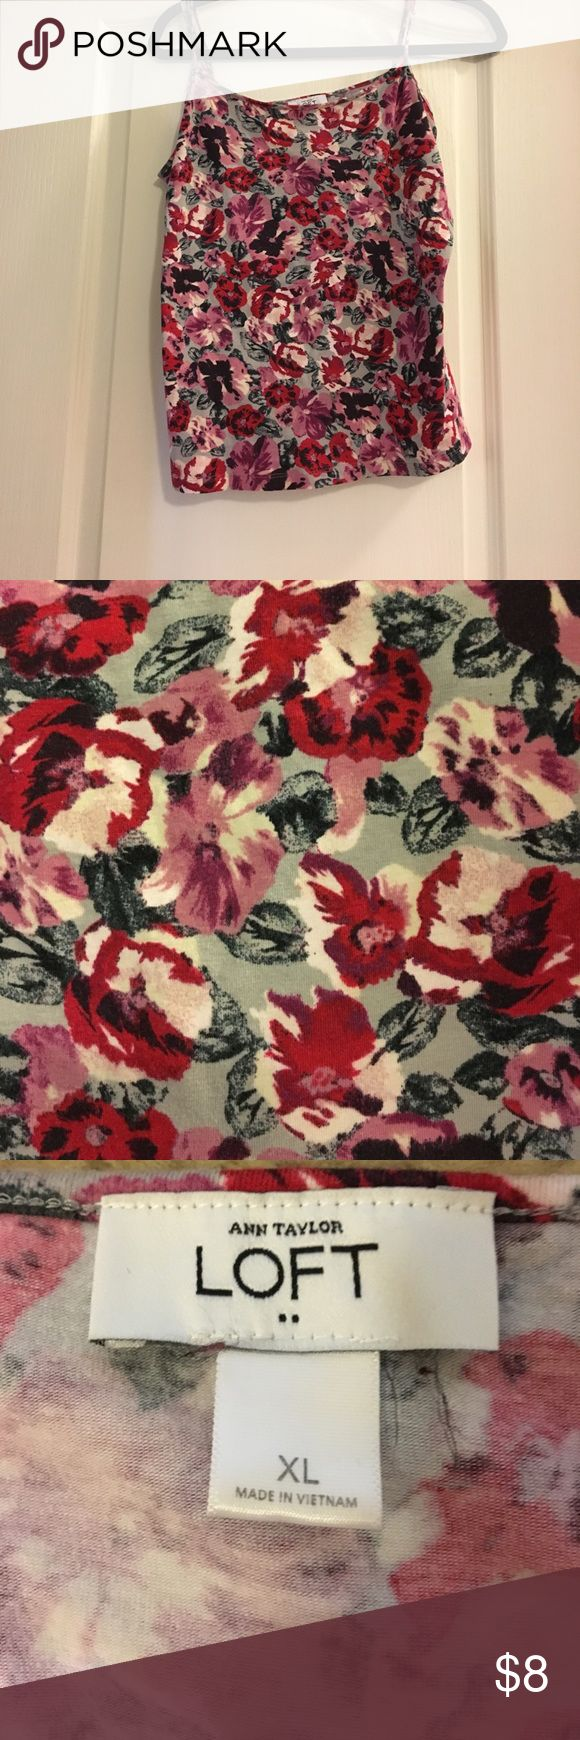 Loft floral cami Loft floral cami with reds, pinks, black, and gray LOFT Tops Camisoles